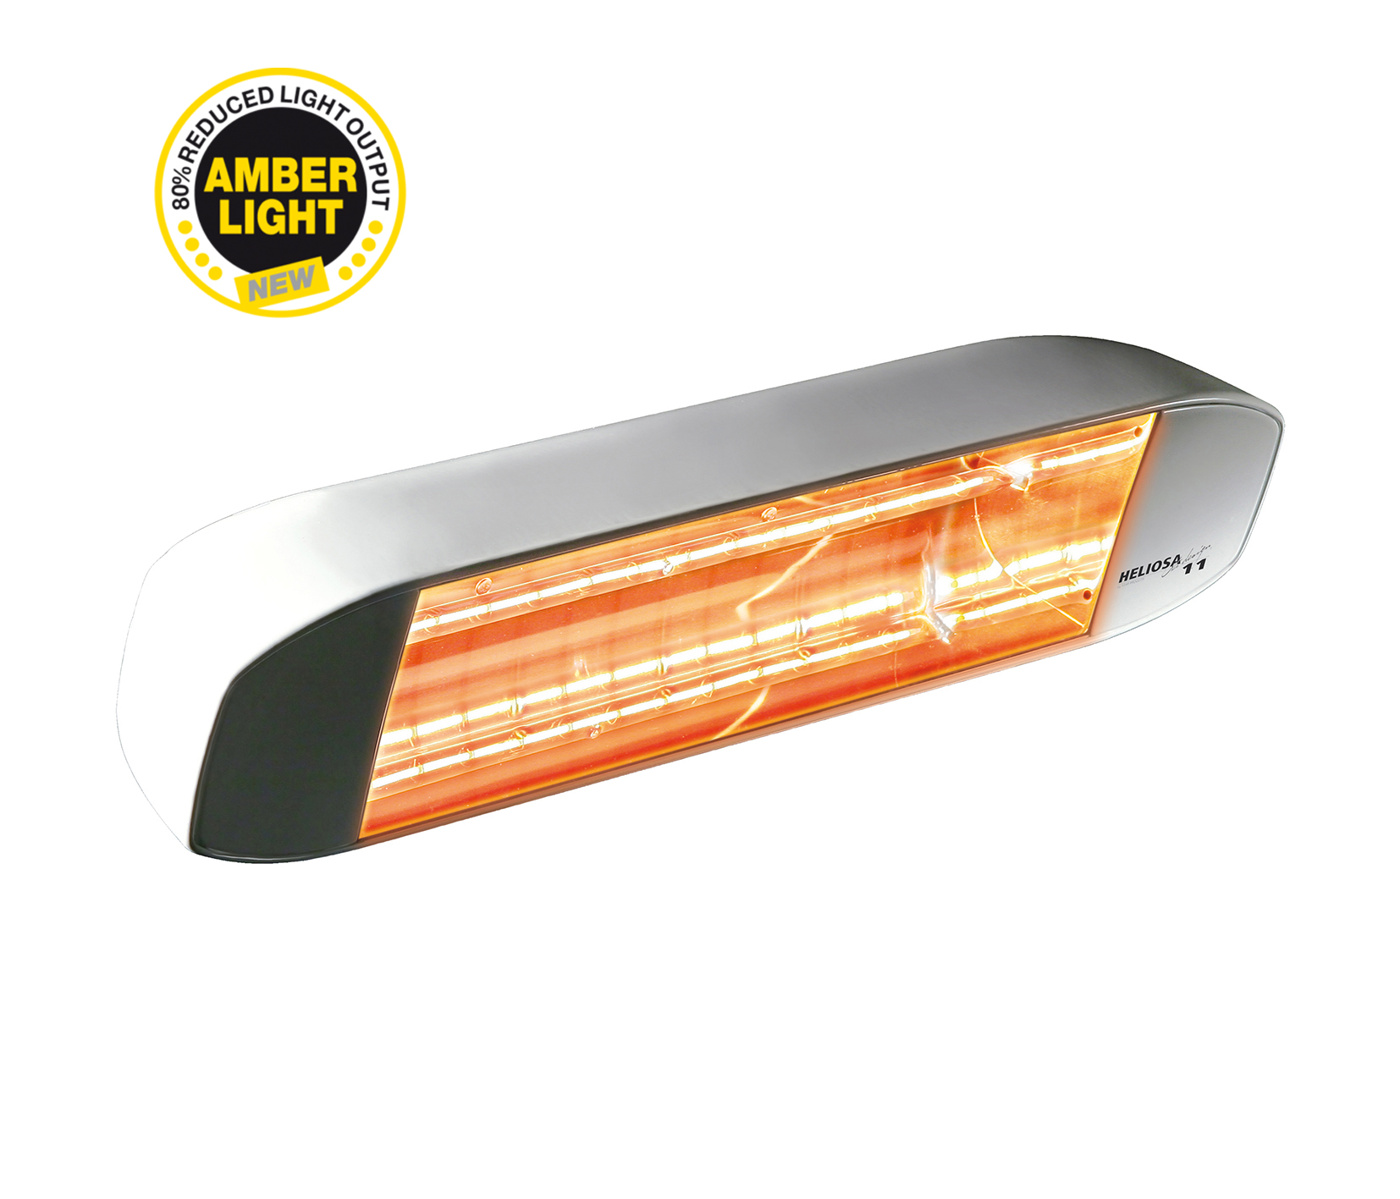 Heliosa 11 Amber Light 1500 Watt